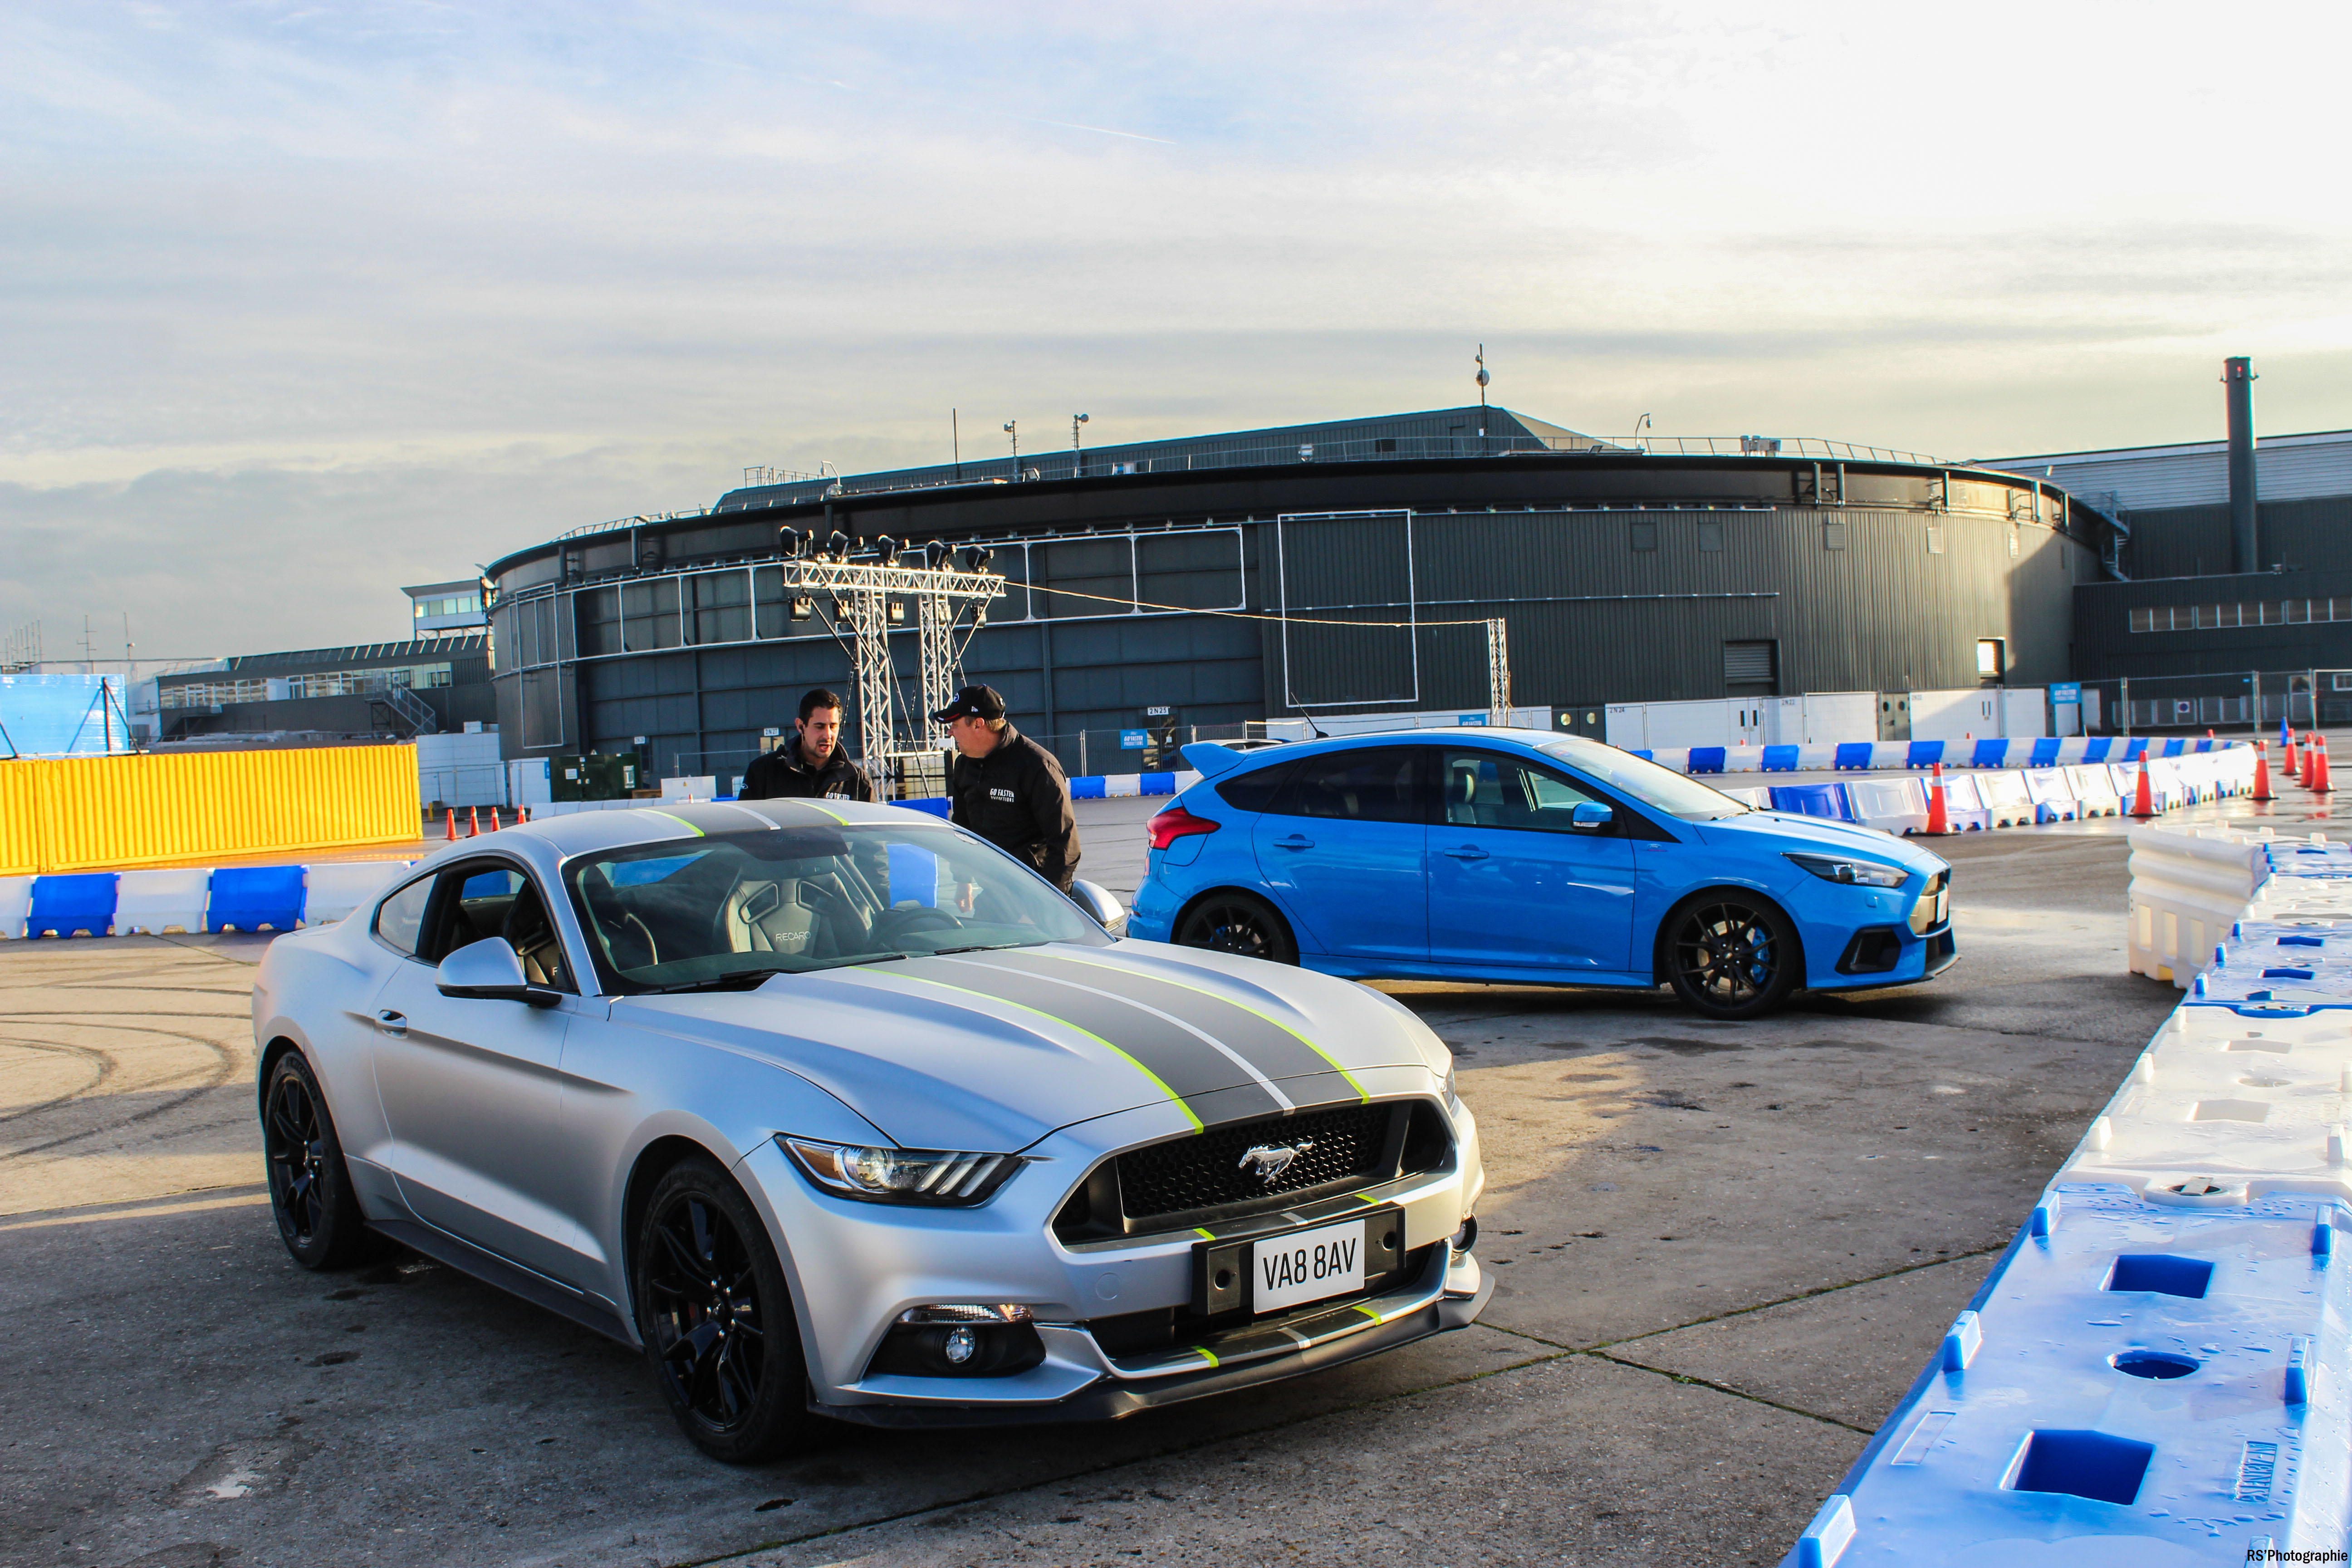 gofaster25-opération-go-faster-ford-focus-rs-mustang-v8-Arnaud Demasier-RSPhotographie